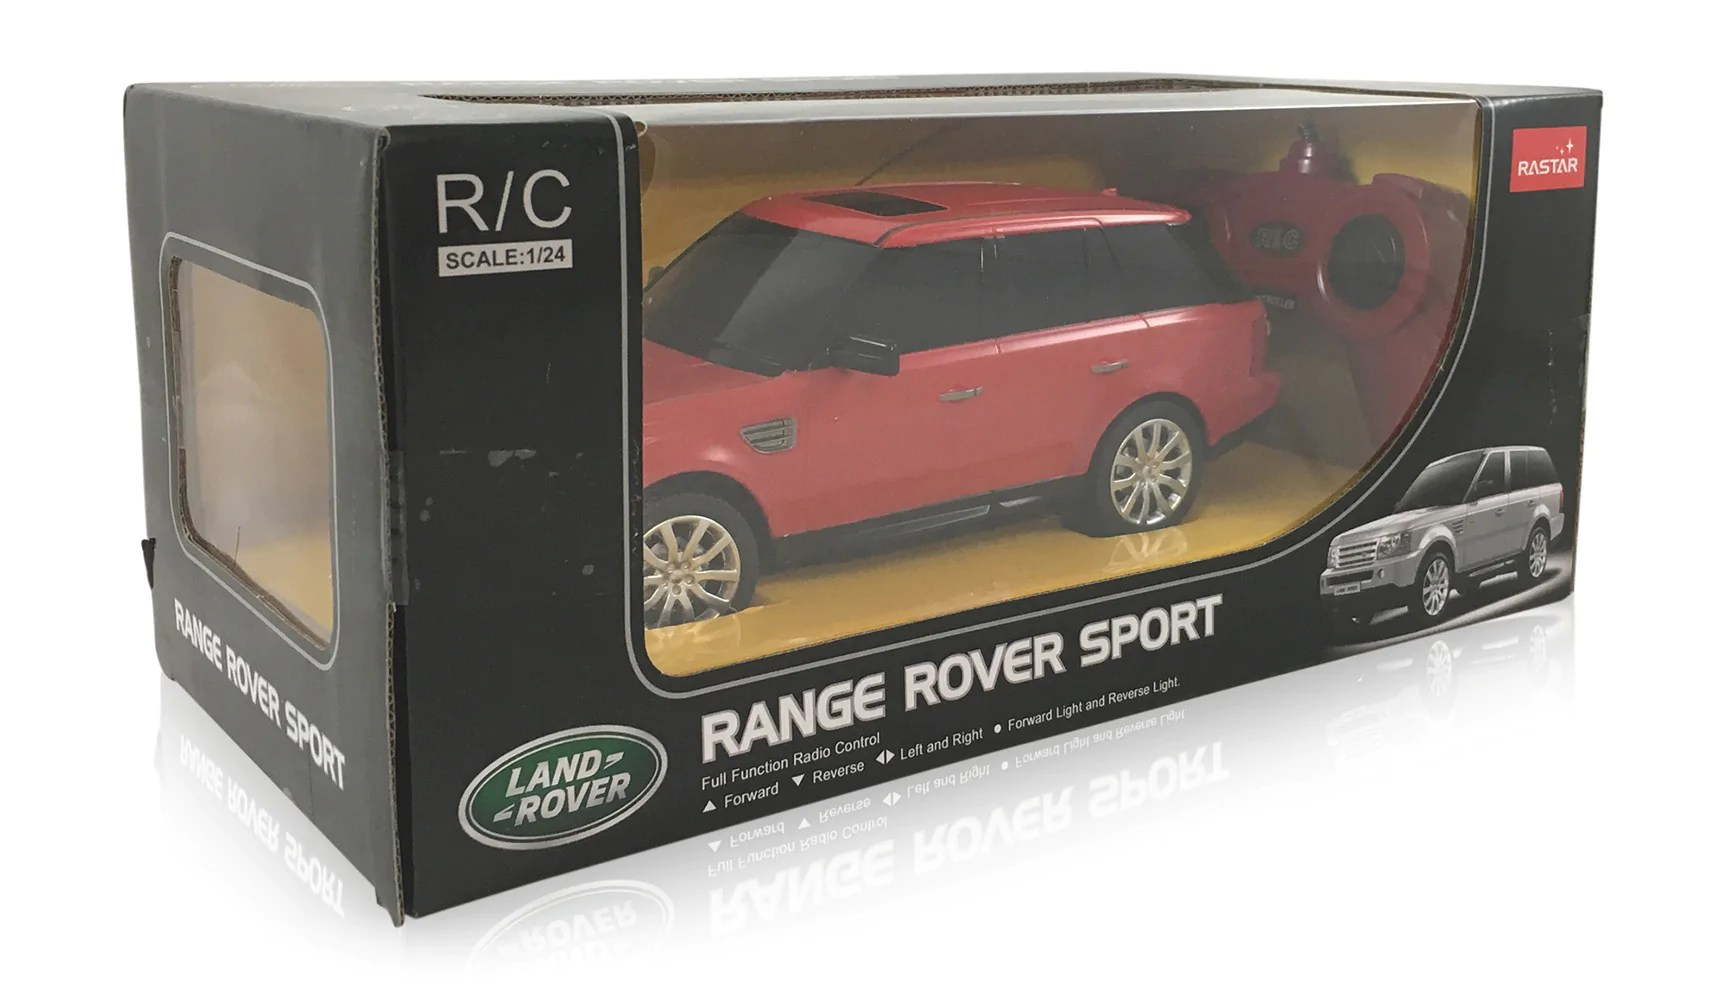 small resolution of land rover range rover sport red 1 24 scale radio controlled model car by rastar